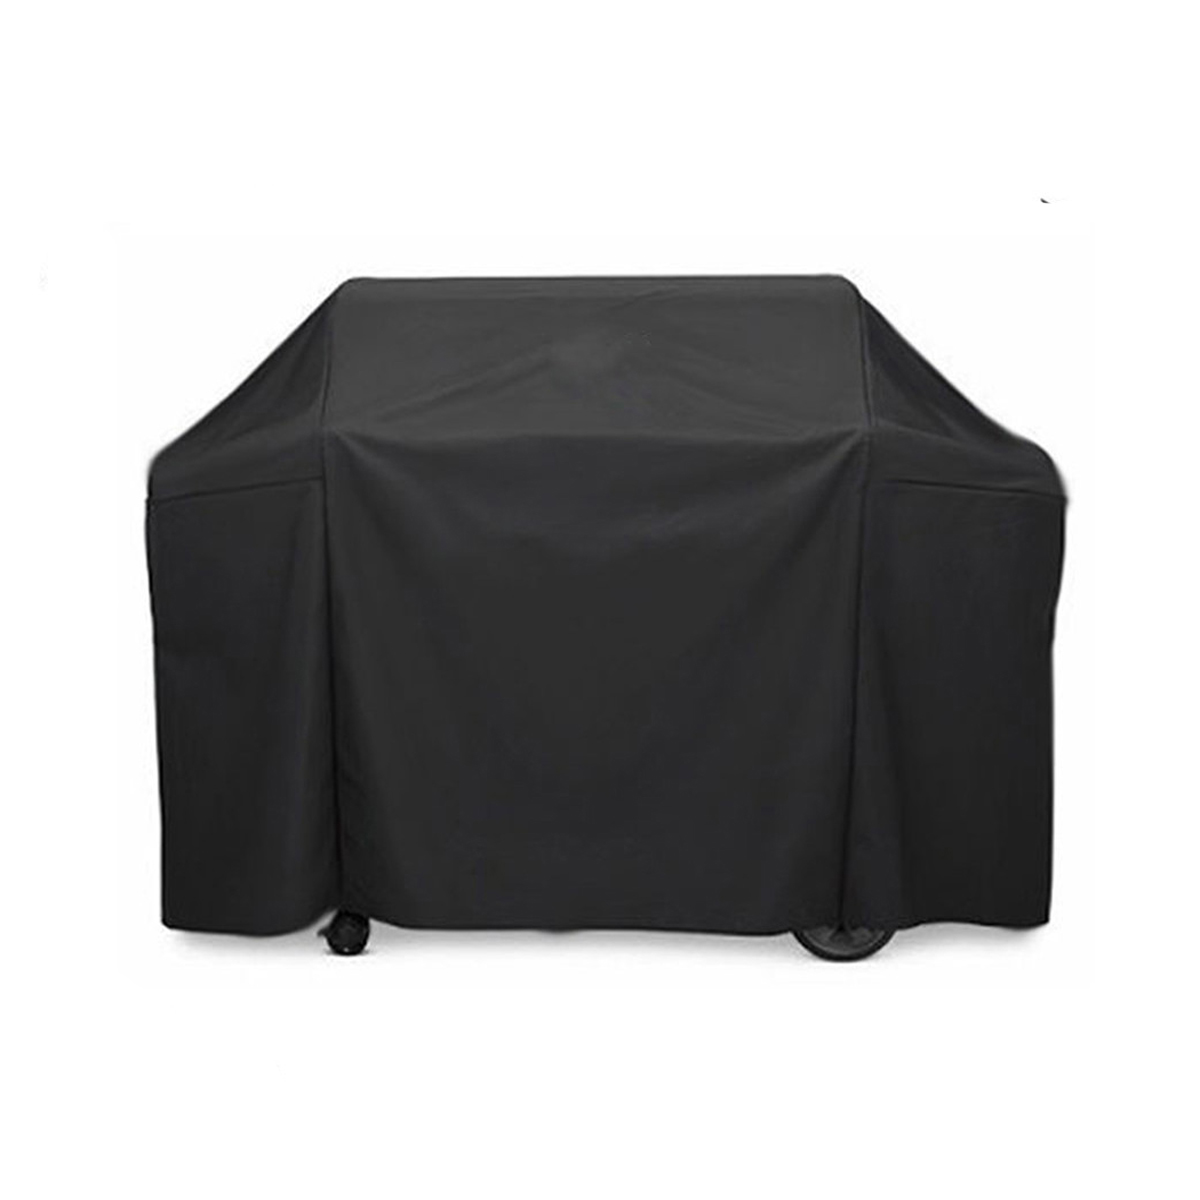 Outdoor Barbeque BBQ Grill Waterproof Cover With Storage Bag For Weber 7131 Genesis II